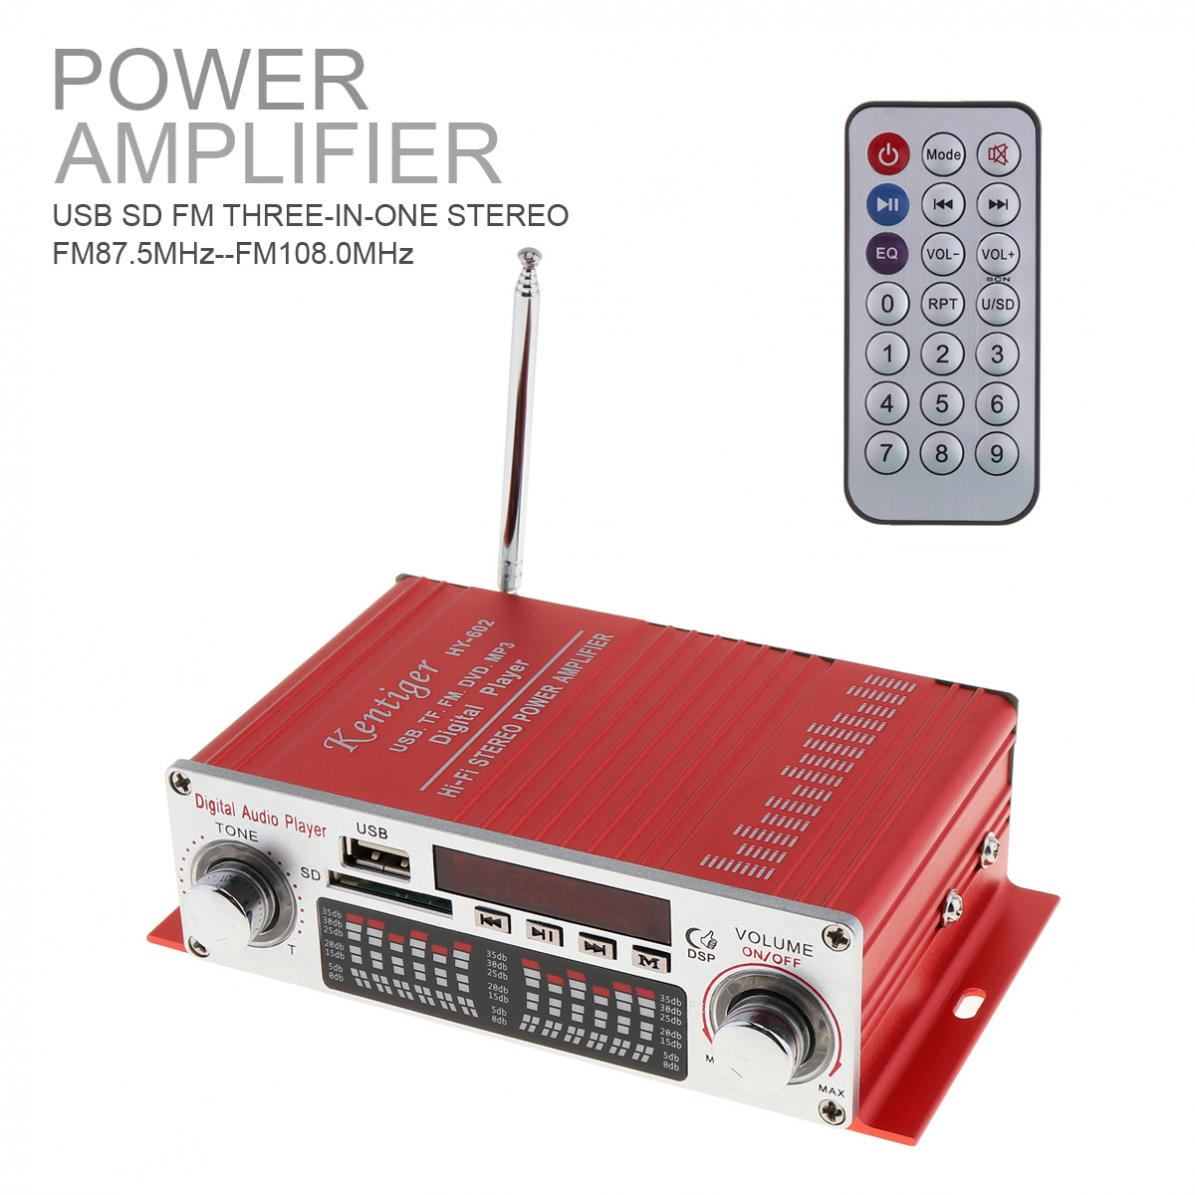 HY-602 HI-FI Digital Car Audio Player Car Amplifier FM Radio Stereo Player Support SD /USB / DVD / MP3 Input with Remote Control